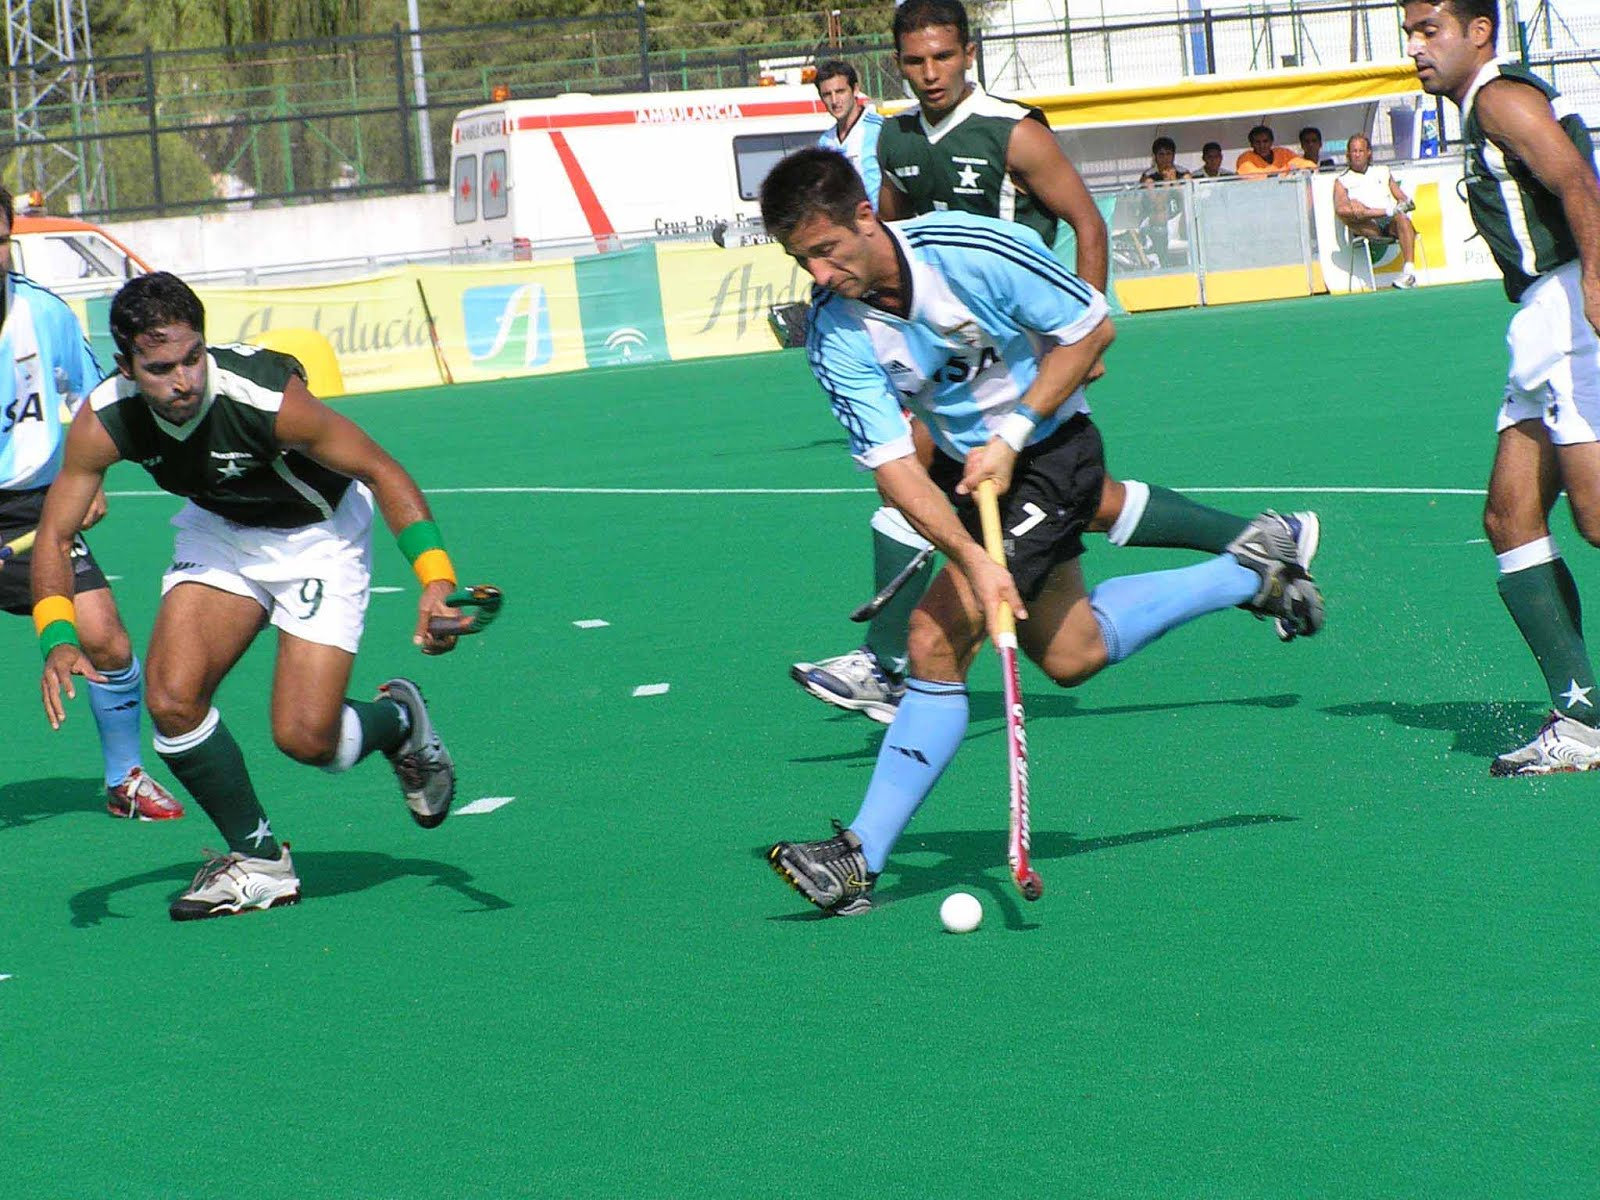 A game of field hockey